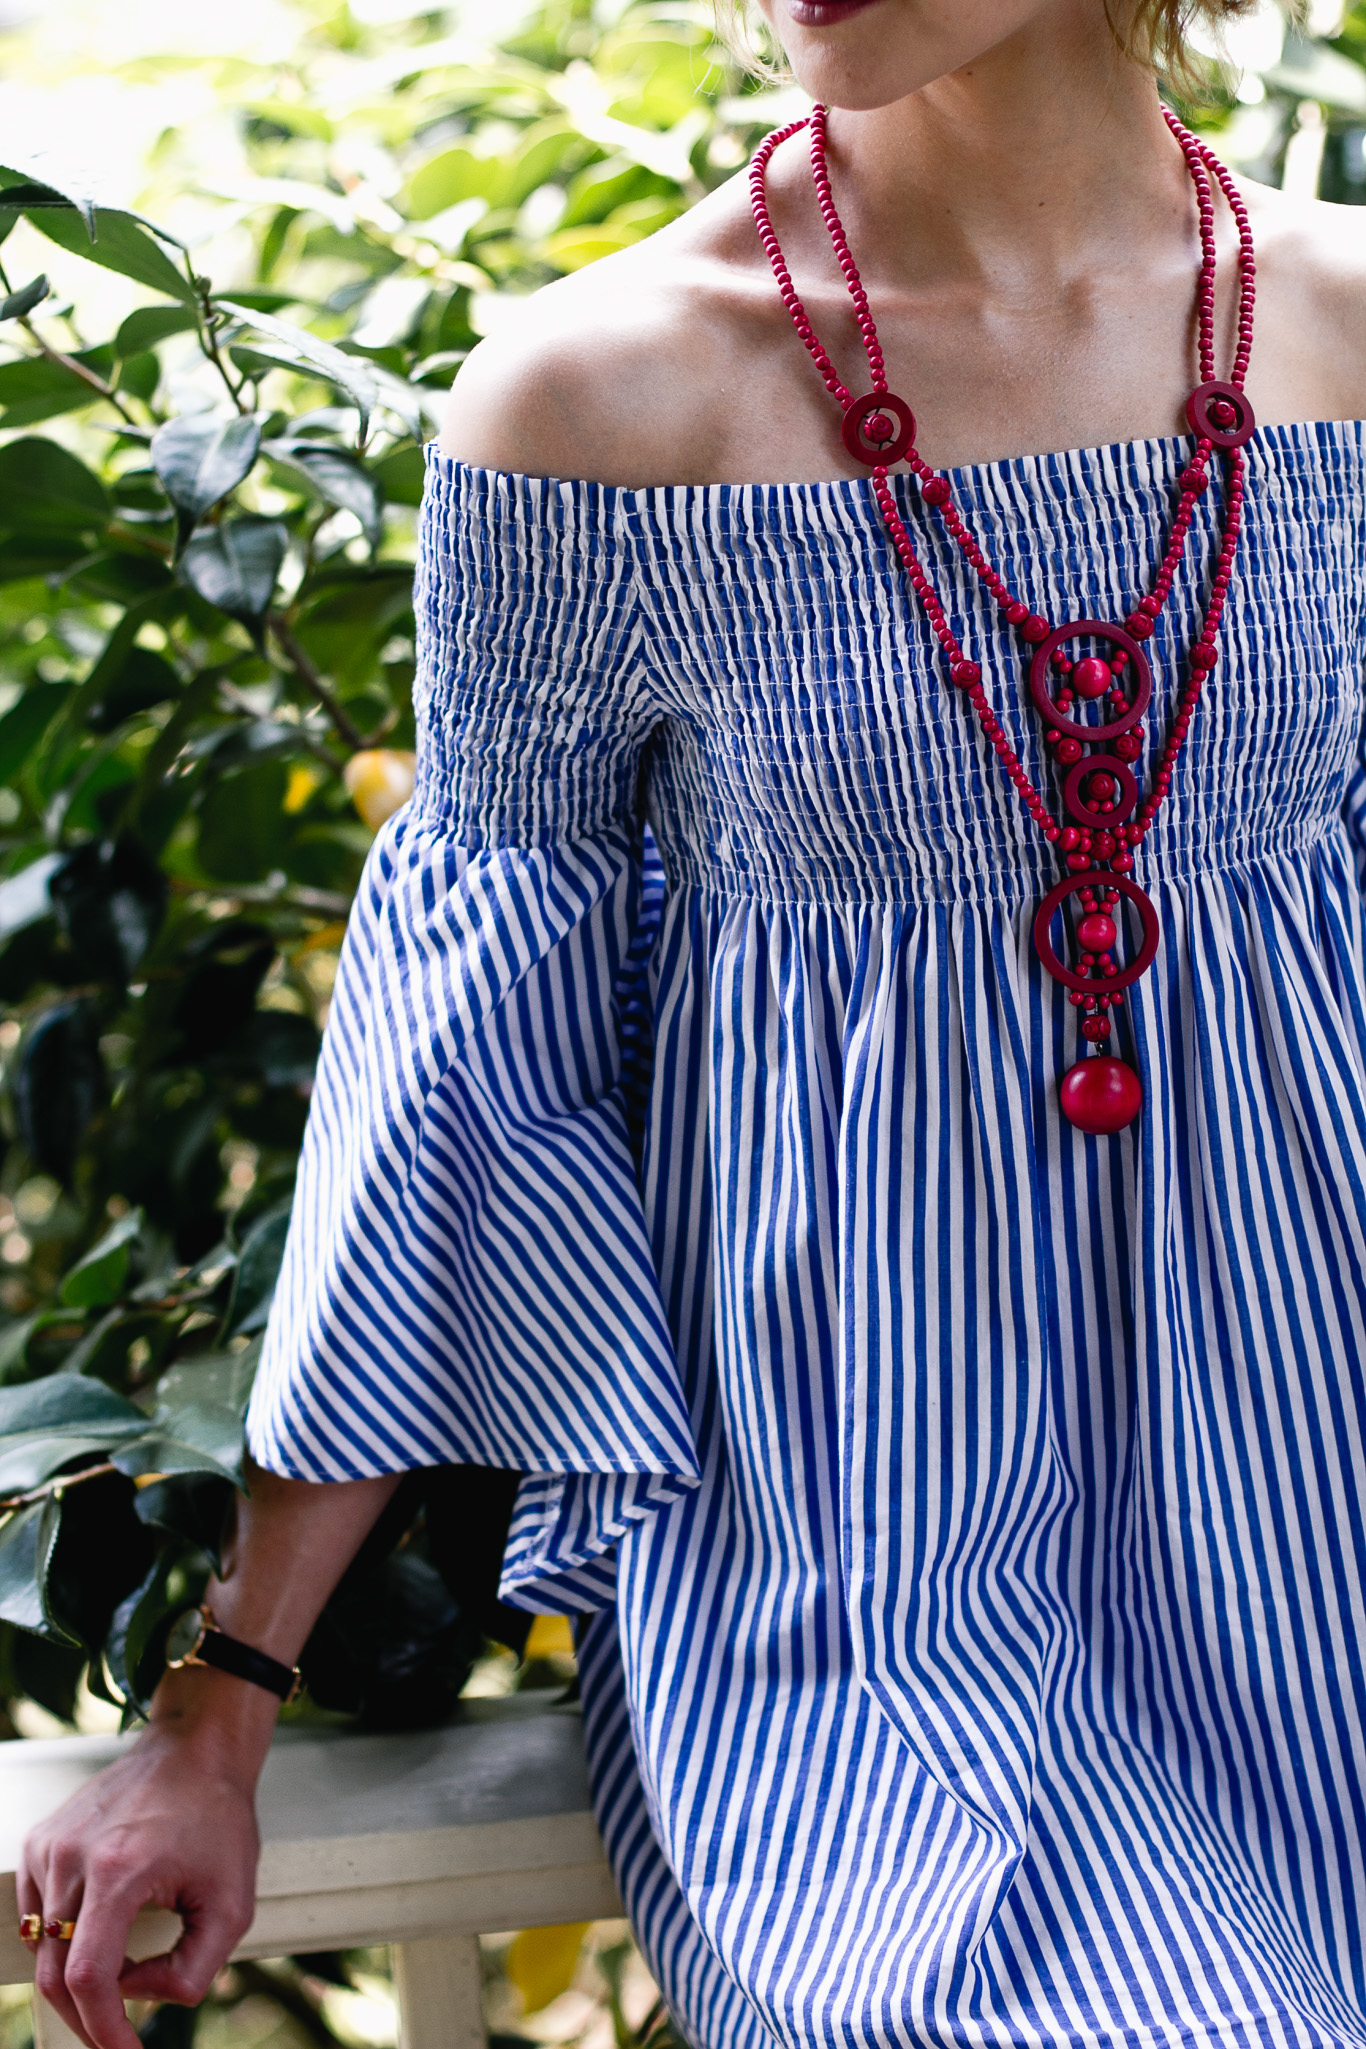 Zara pinstripe dress and vintage necklace